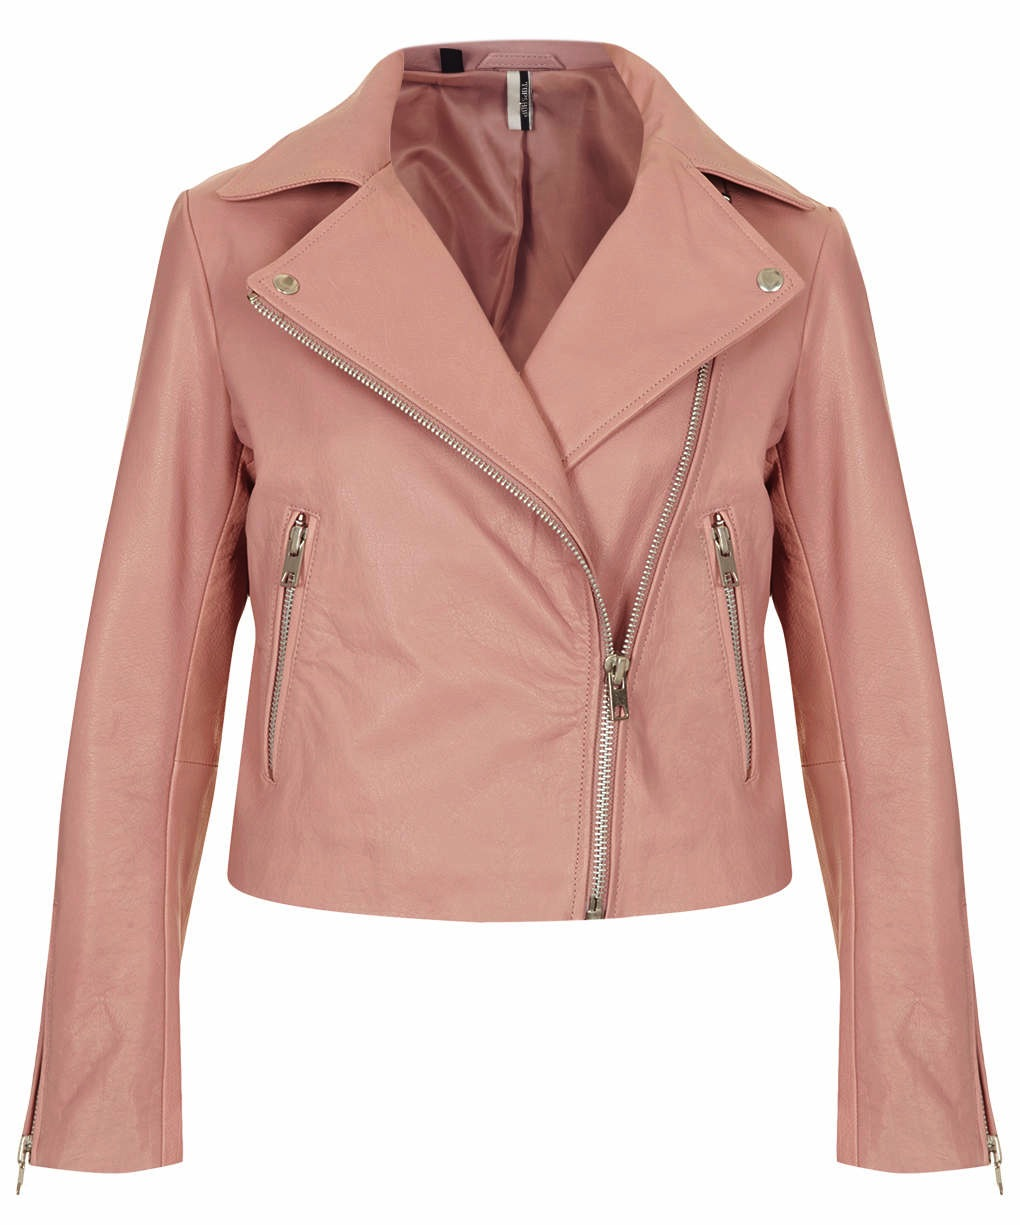 10 Spring Pastel Coloured Leather Biker Jackets | The Fashion ...